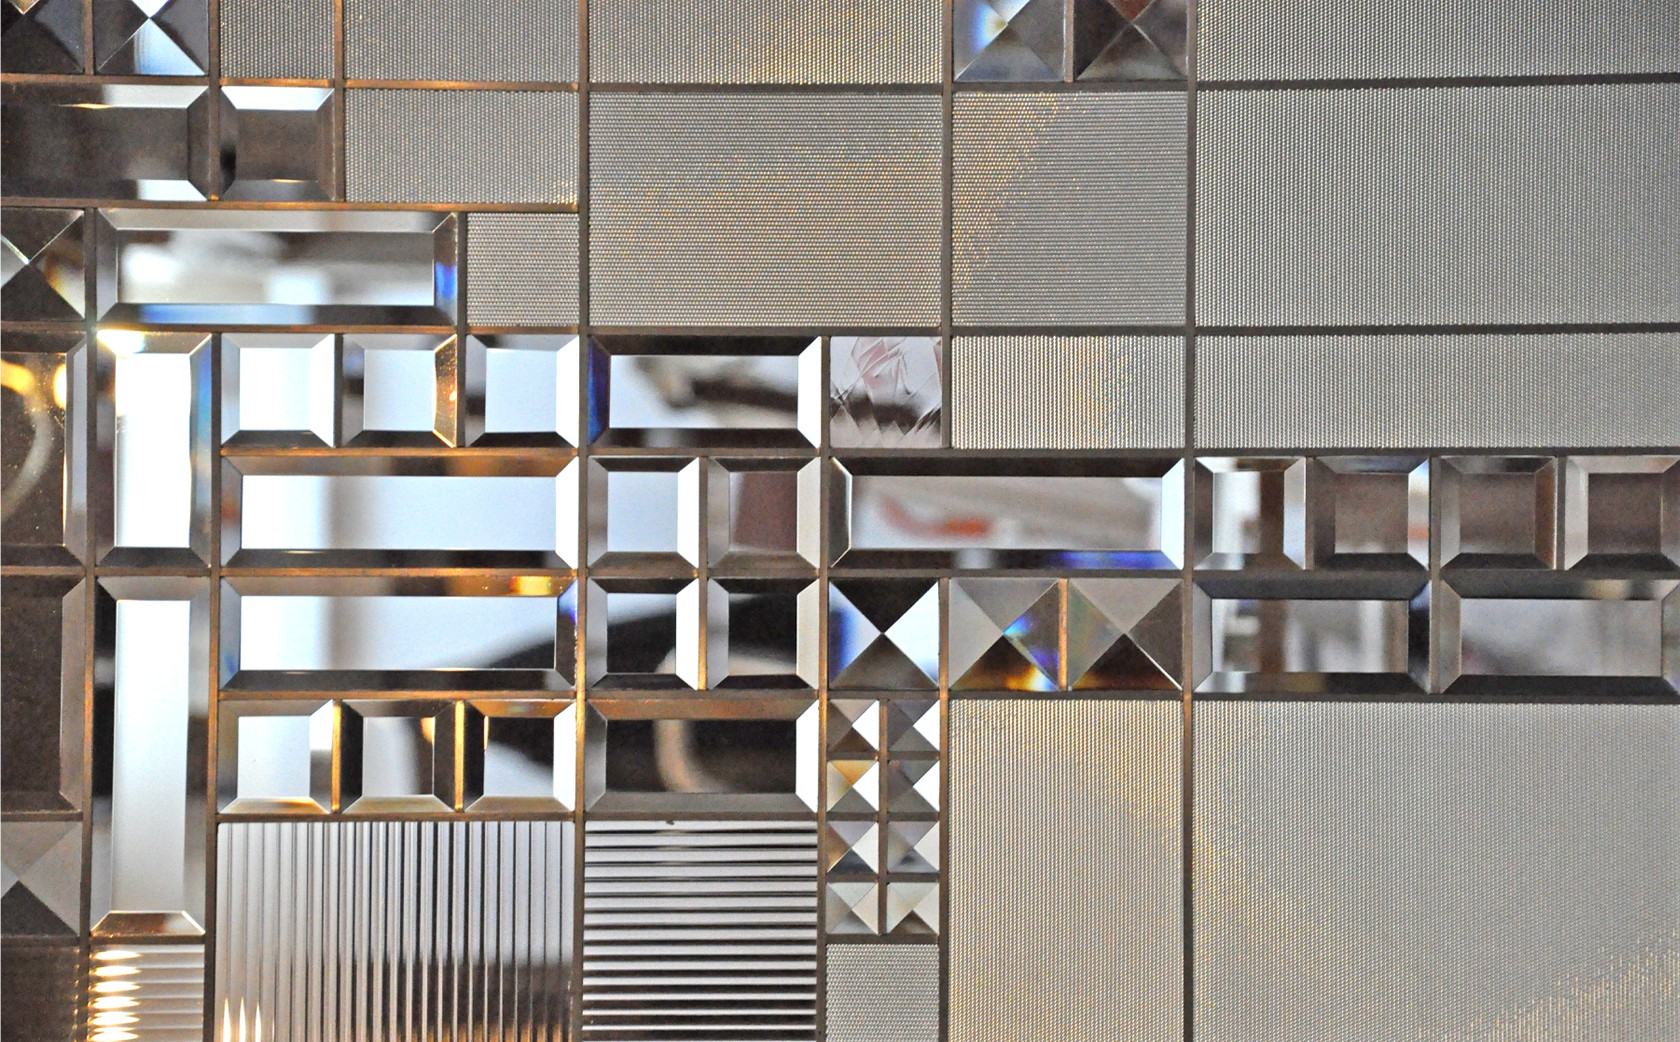 Structural glass systems reflect historic decorative elements translated into a contemporary functional idiom.